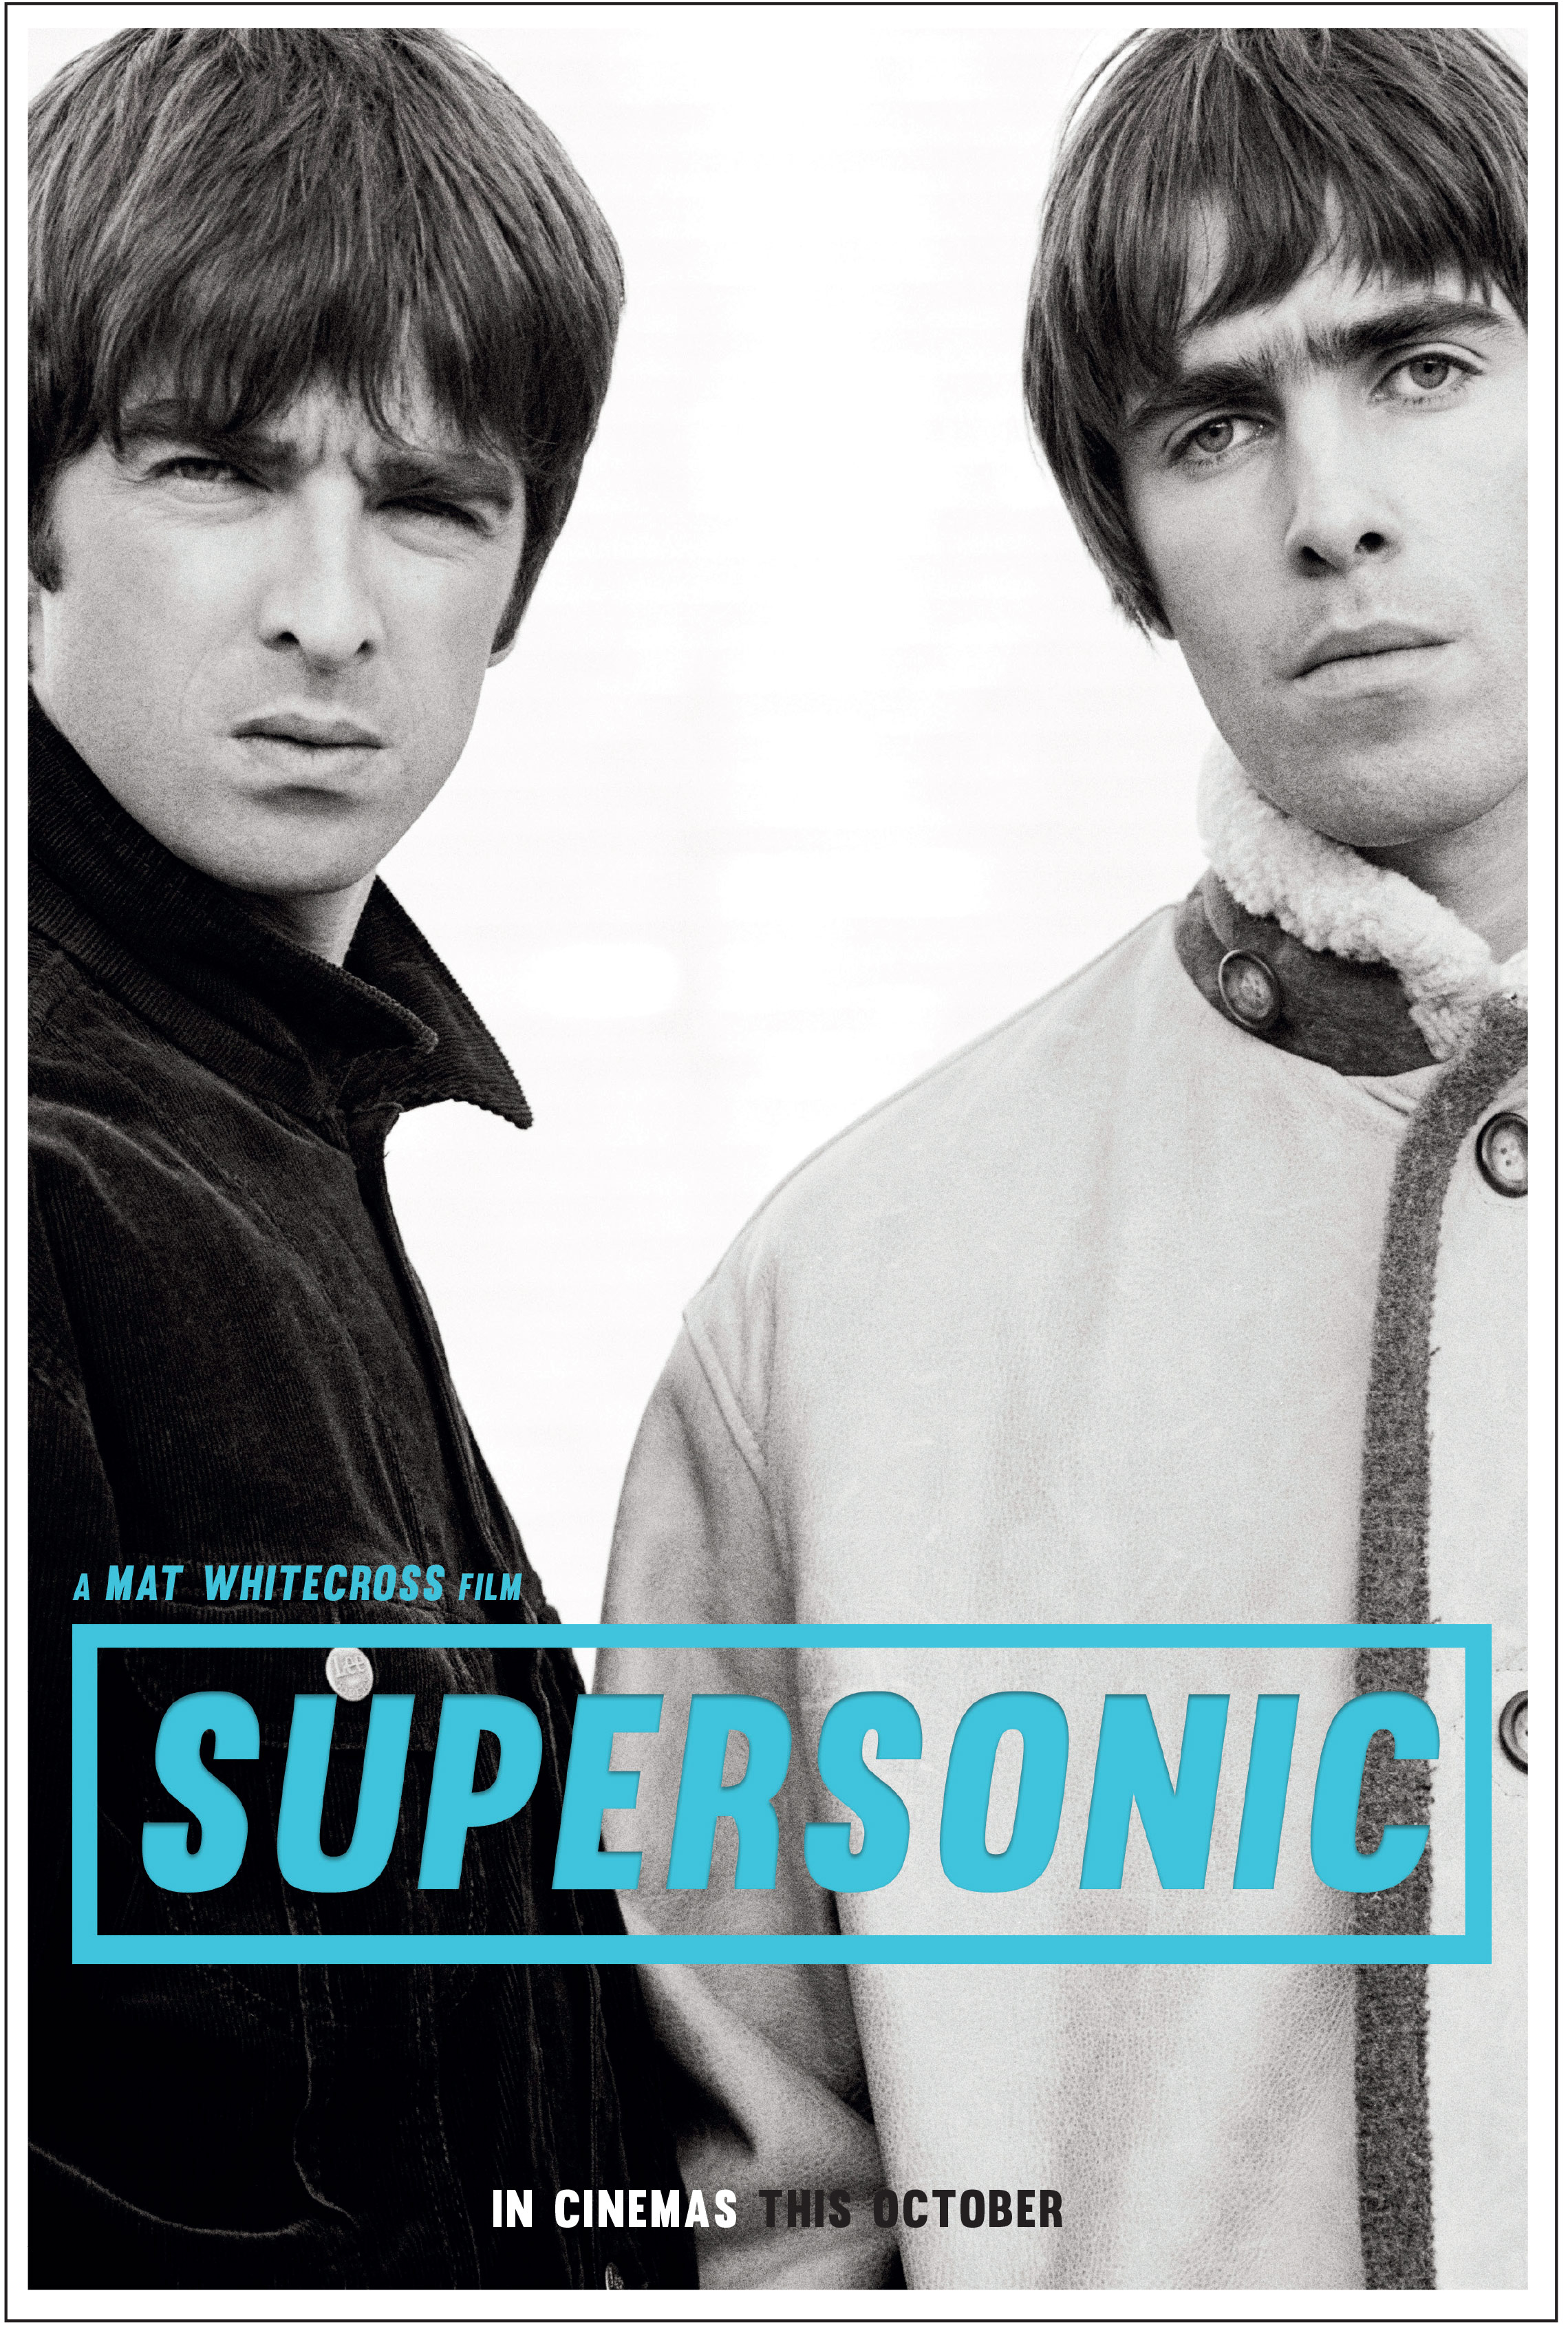 Oasis Supersonic film poster